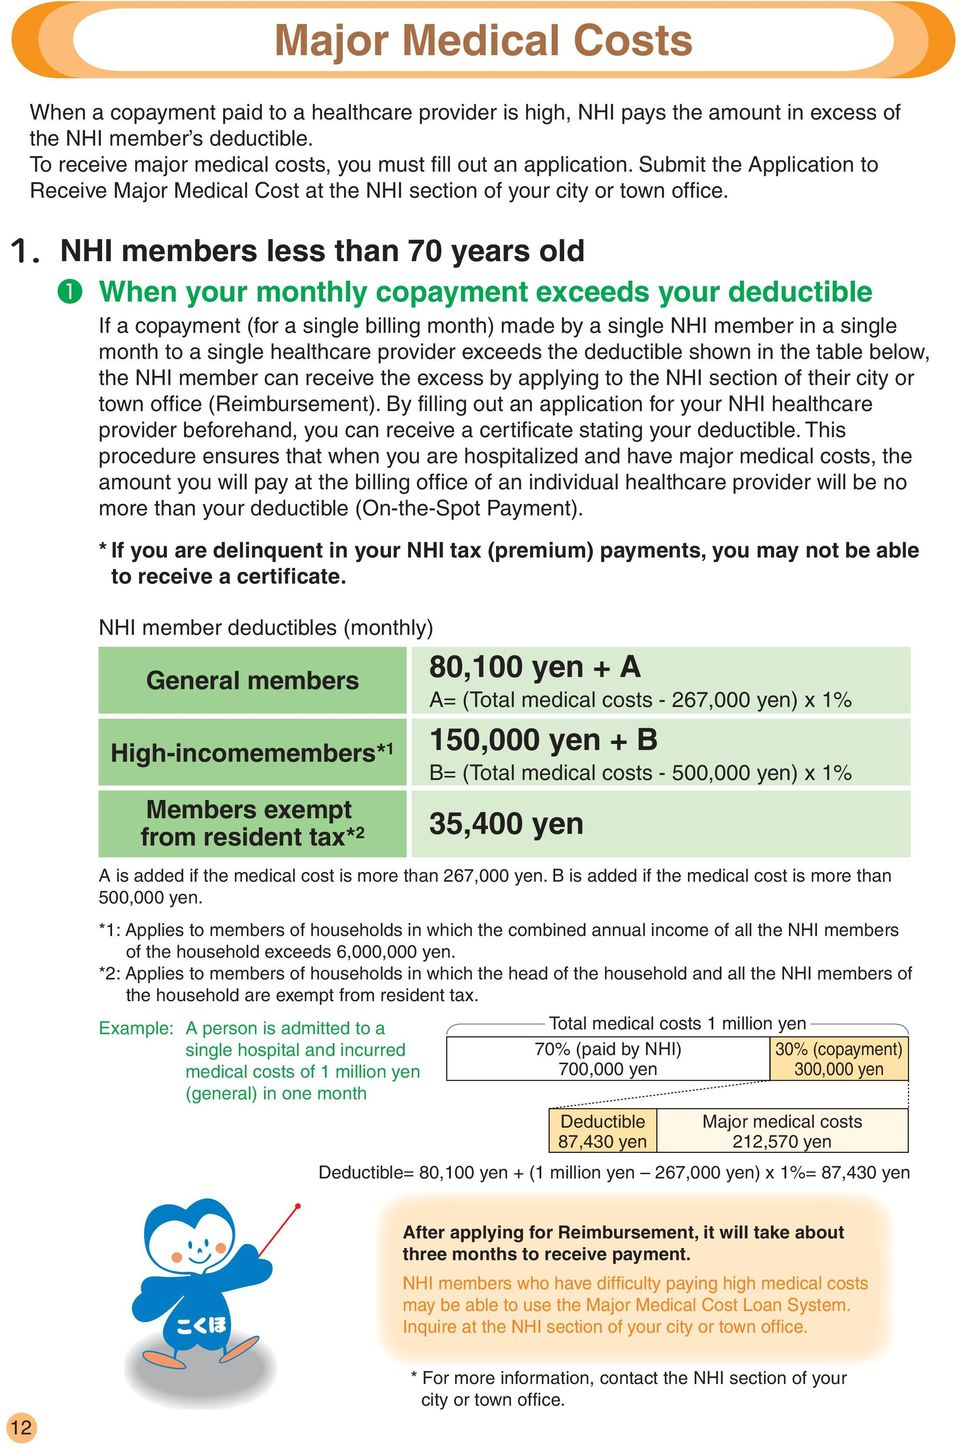 NHI members less than 70 years old When your monthly copayment exceeds your deductible If a copayment (for a single billing month) made by a single NHI member in a single month to a single healthcare